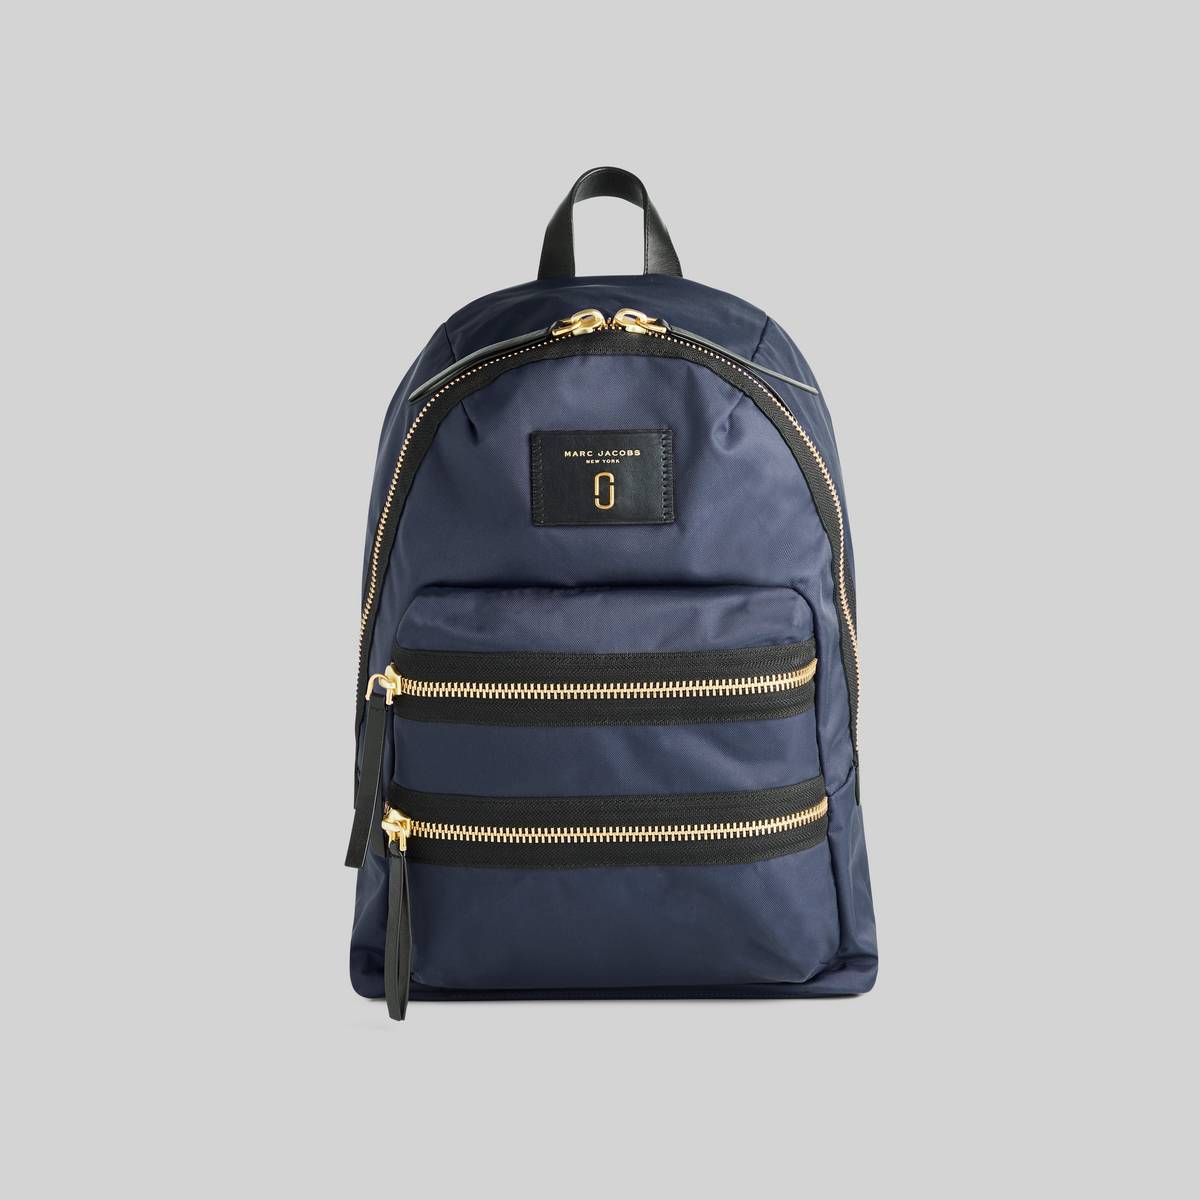 The mini backpack of all trades returning this season in a lightweight, high-performance nylon. Our signature dual exterior zip adds functionality while smooth padded straps allow a comfortable transition from day to night. | MARC JACOBS Women\\'s Nylon Biker Mini Backpack in Midnight Blue